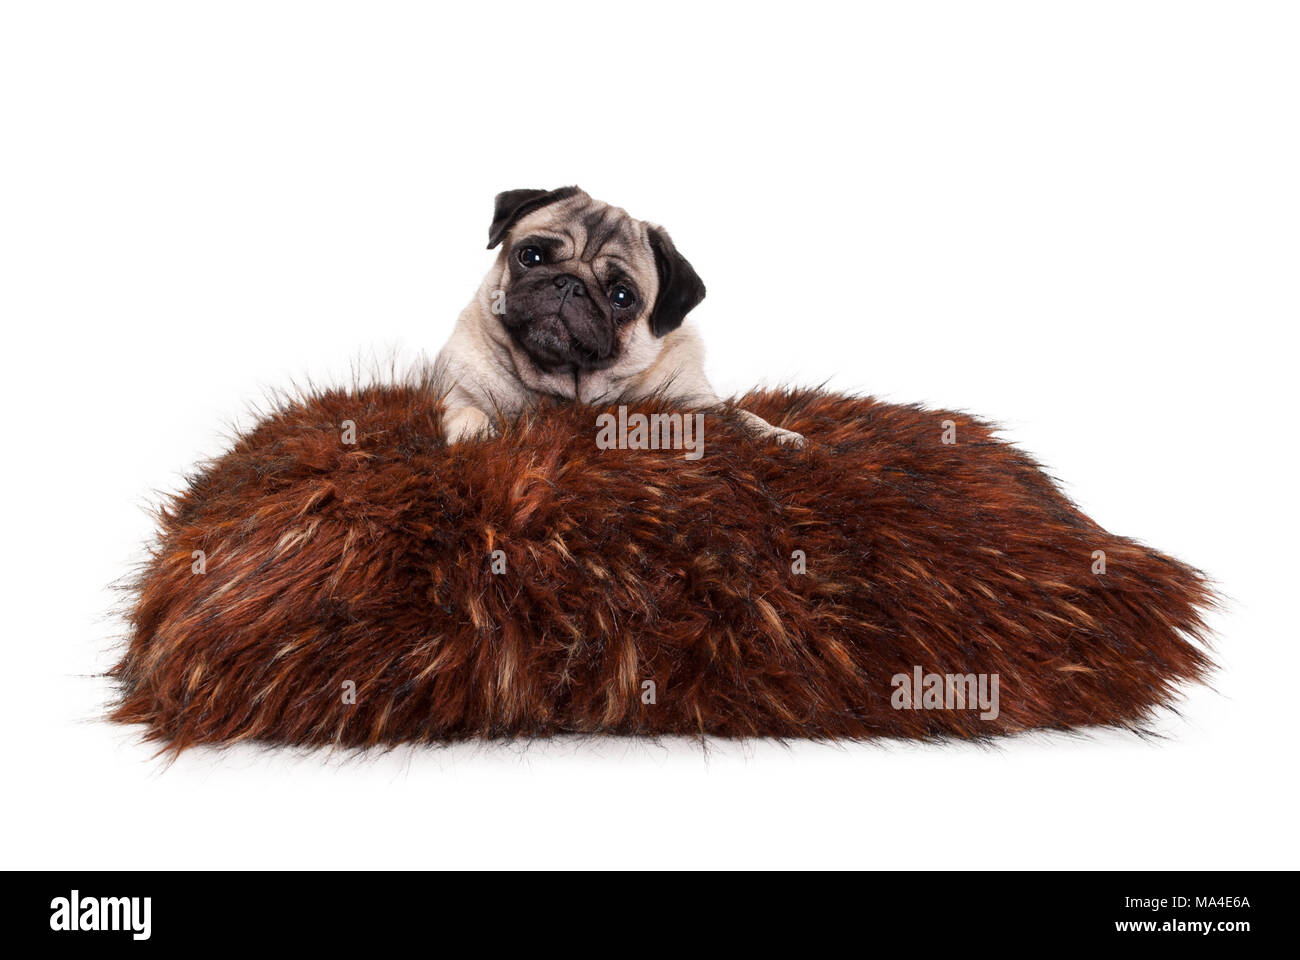 cheeky pug puppy dog lying down on fuzzy fake fur pillow, isolated on white backgroundStock Photo